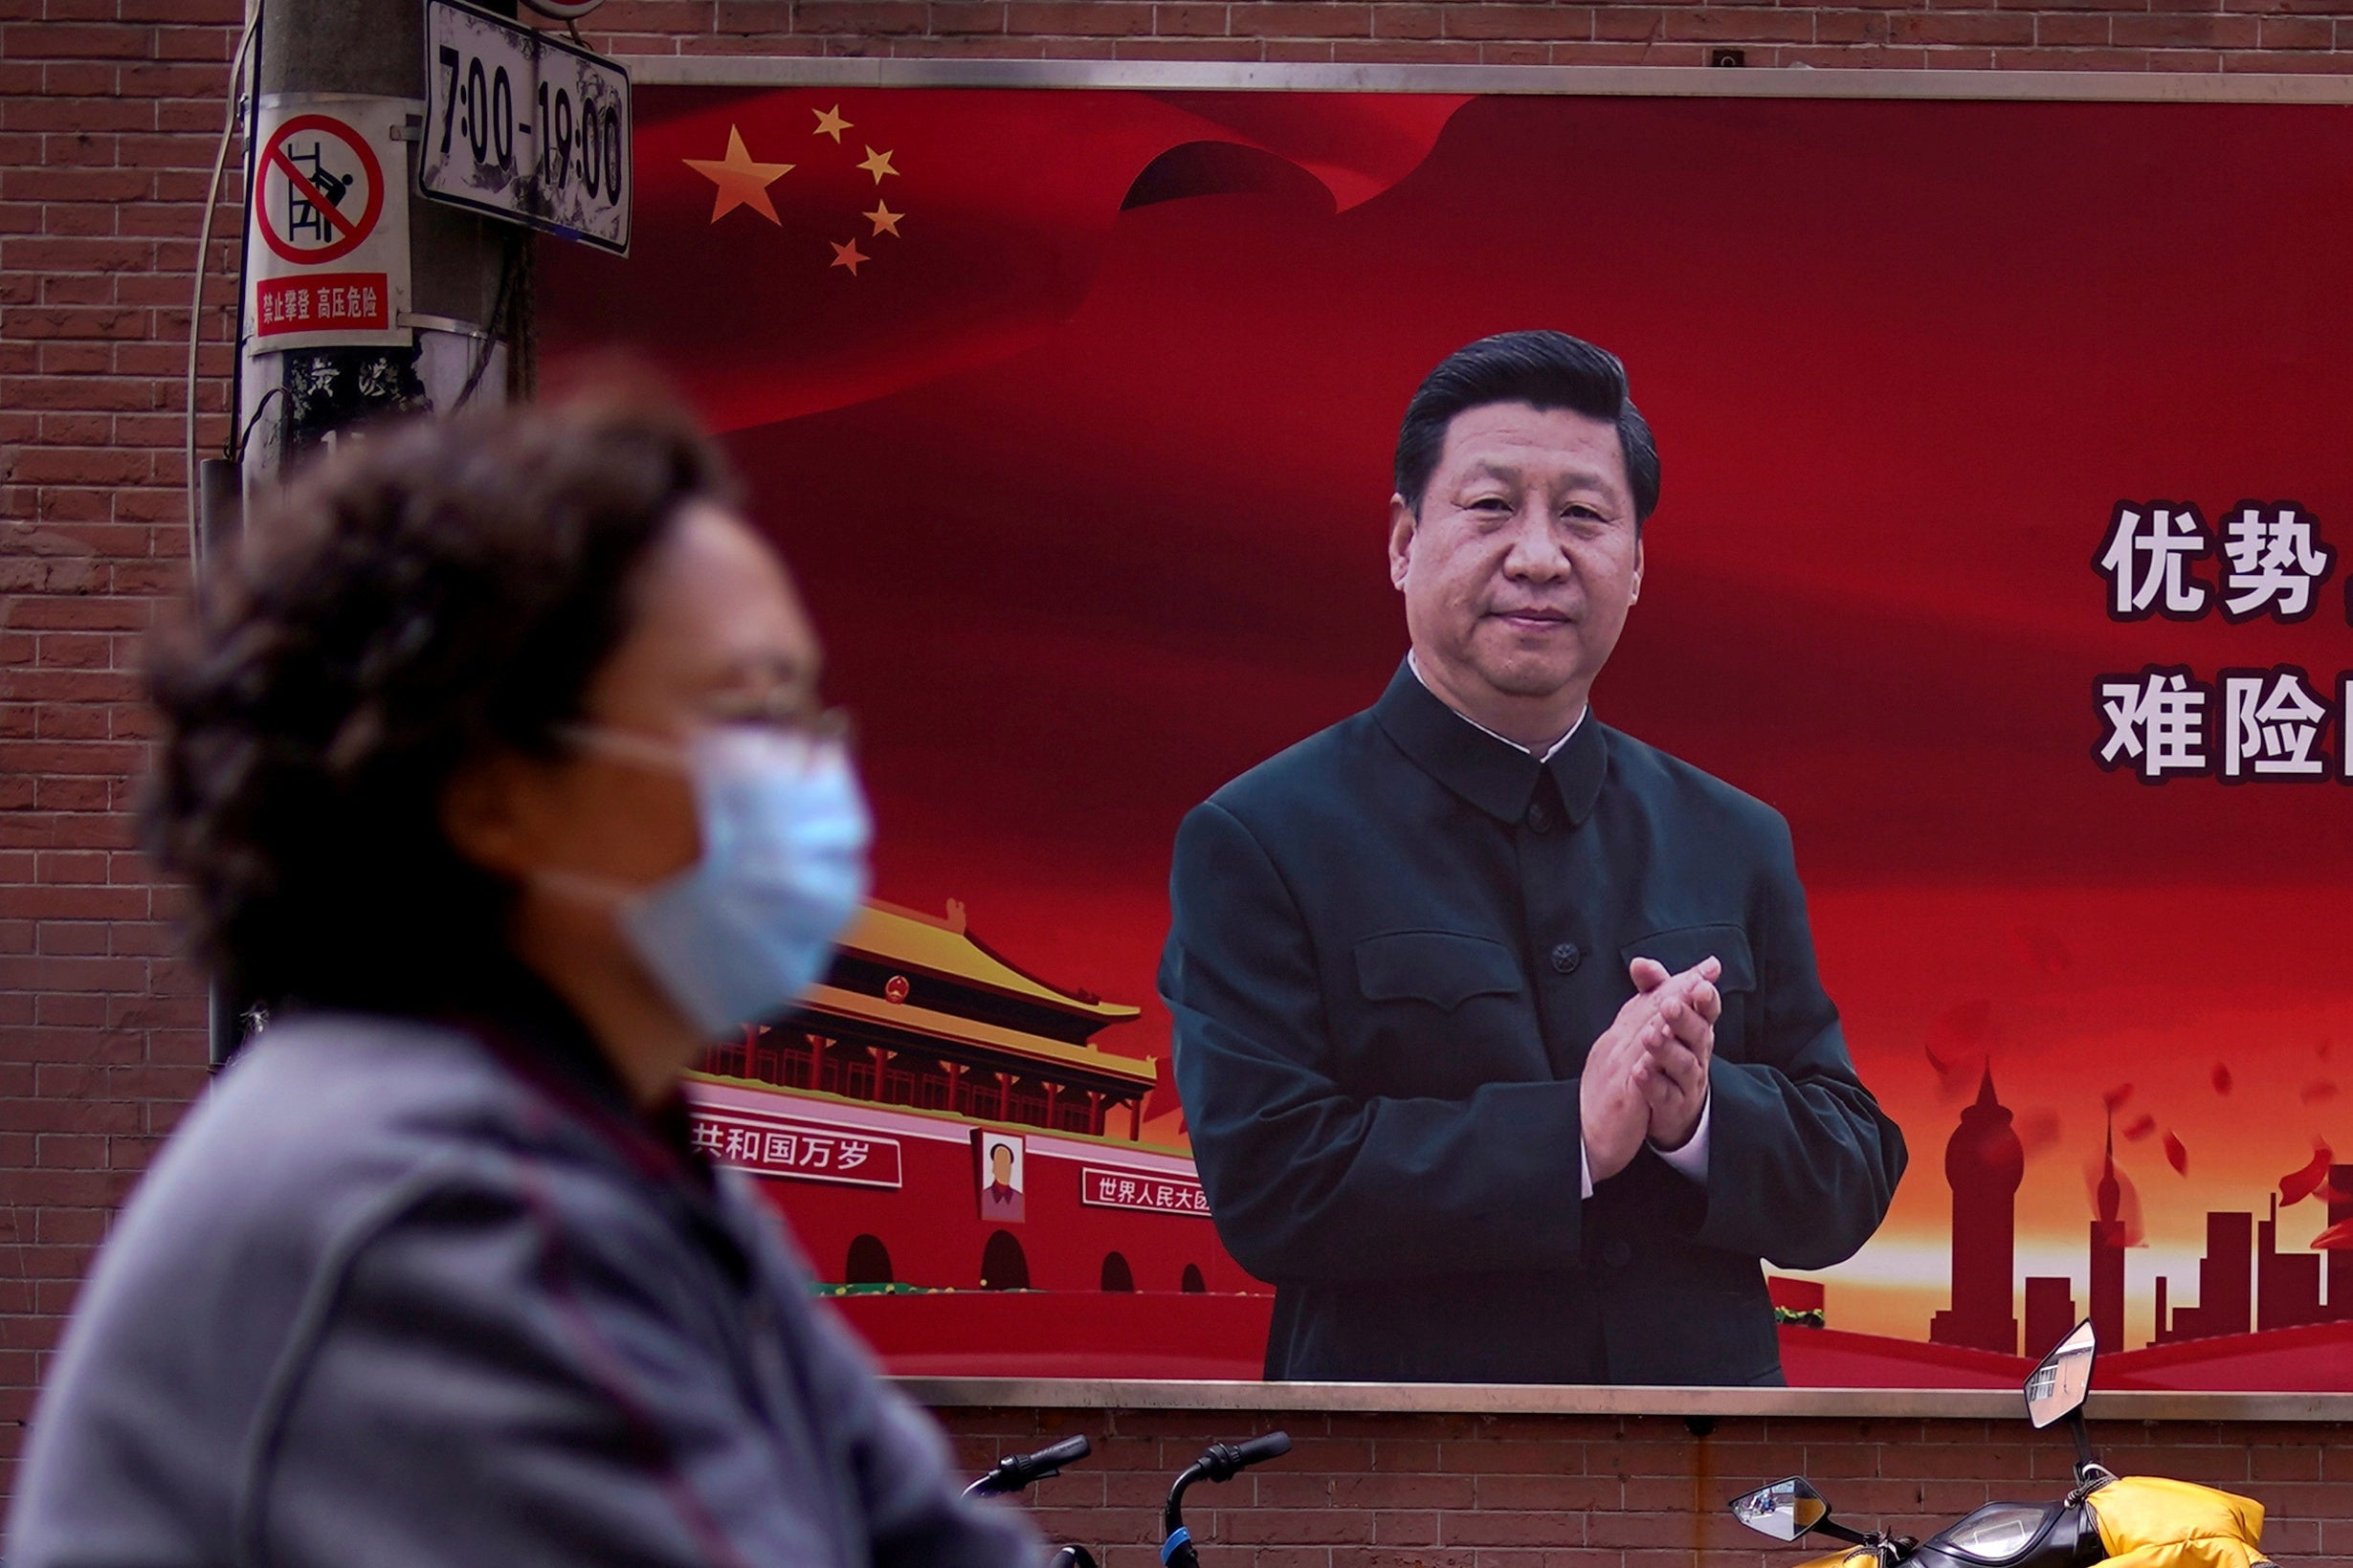 Coronavirus: China hits back at 'preposterous allegations' by Trump and allies